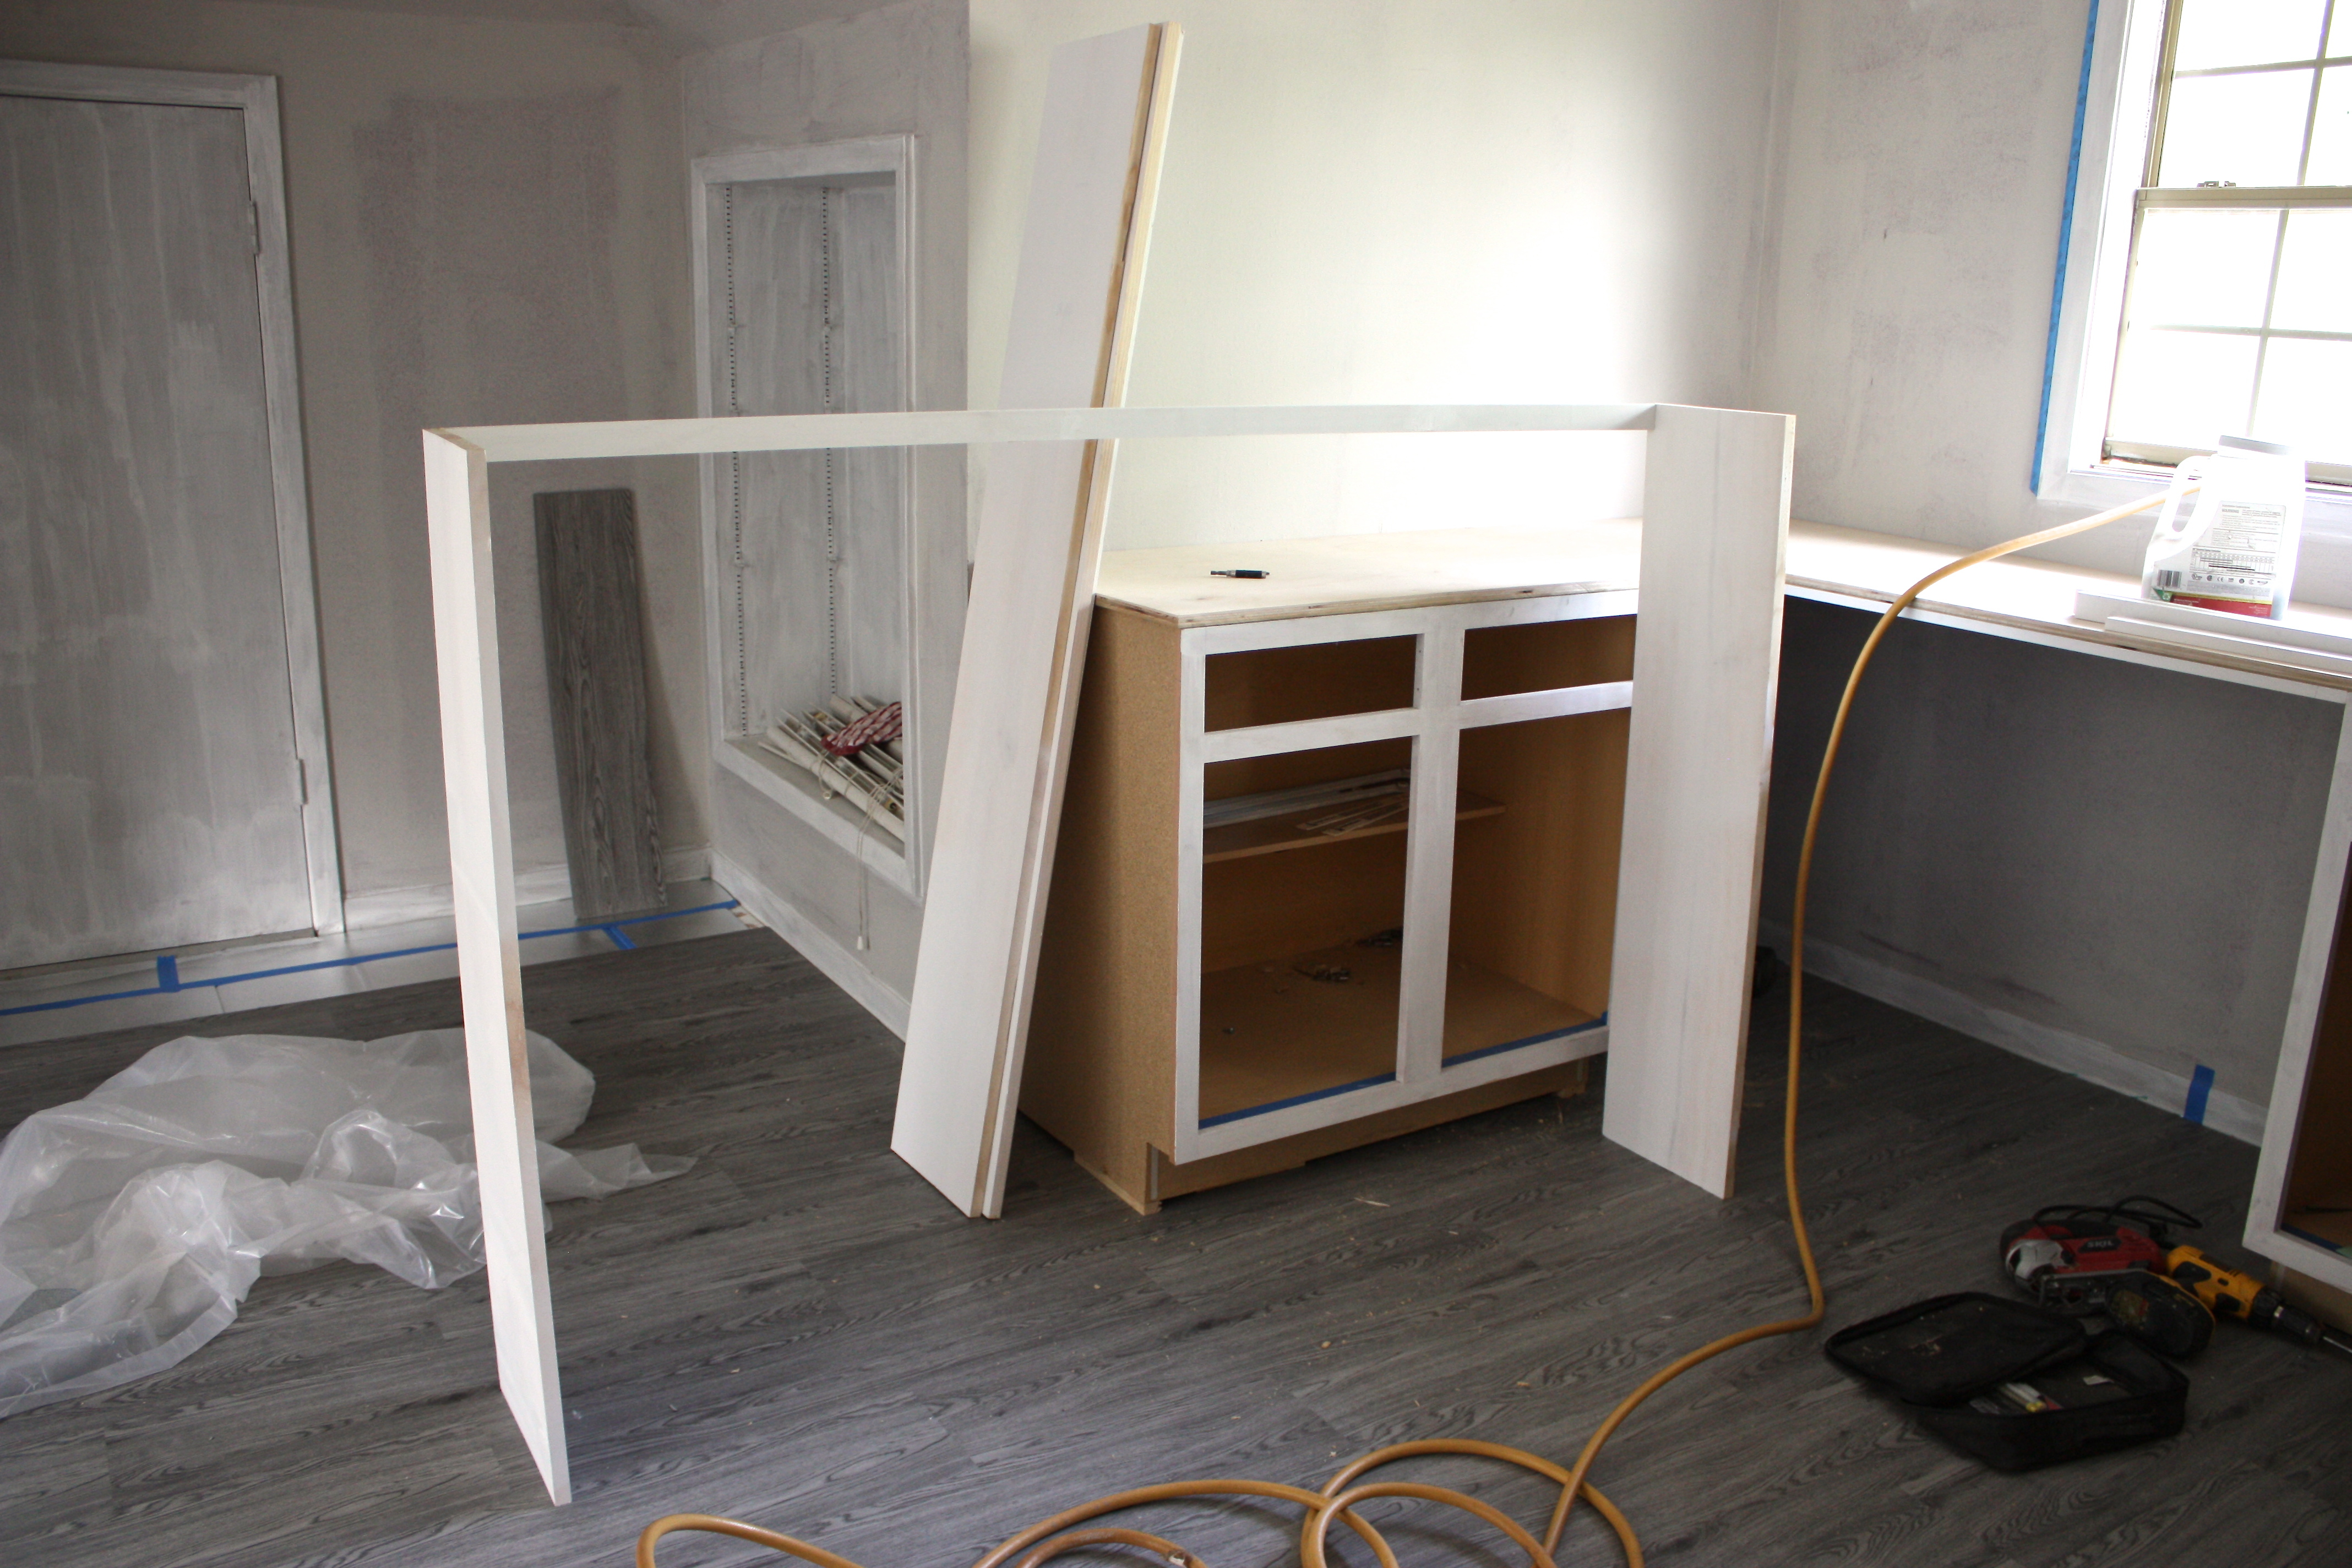 Inexpensive ways to create built in shelving using pre made stock kitchen cabinets The Creativity Exchange